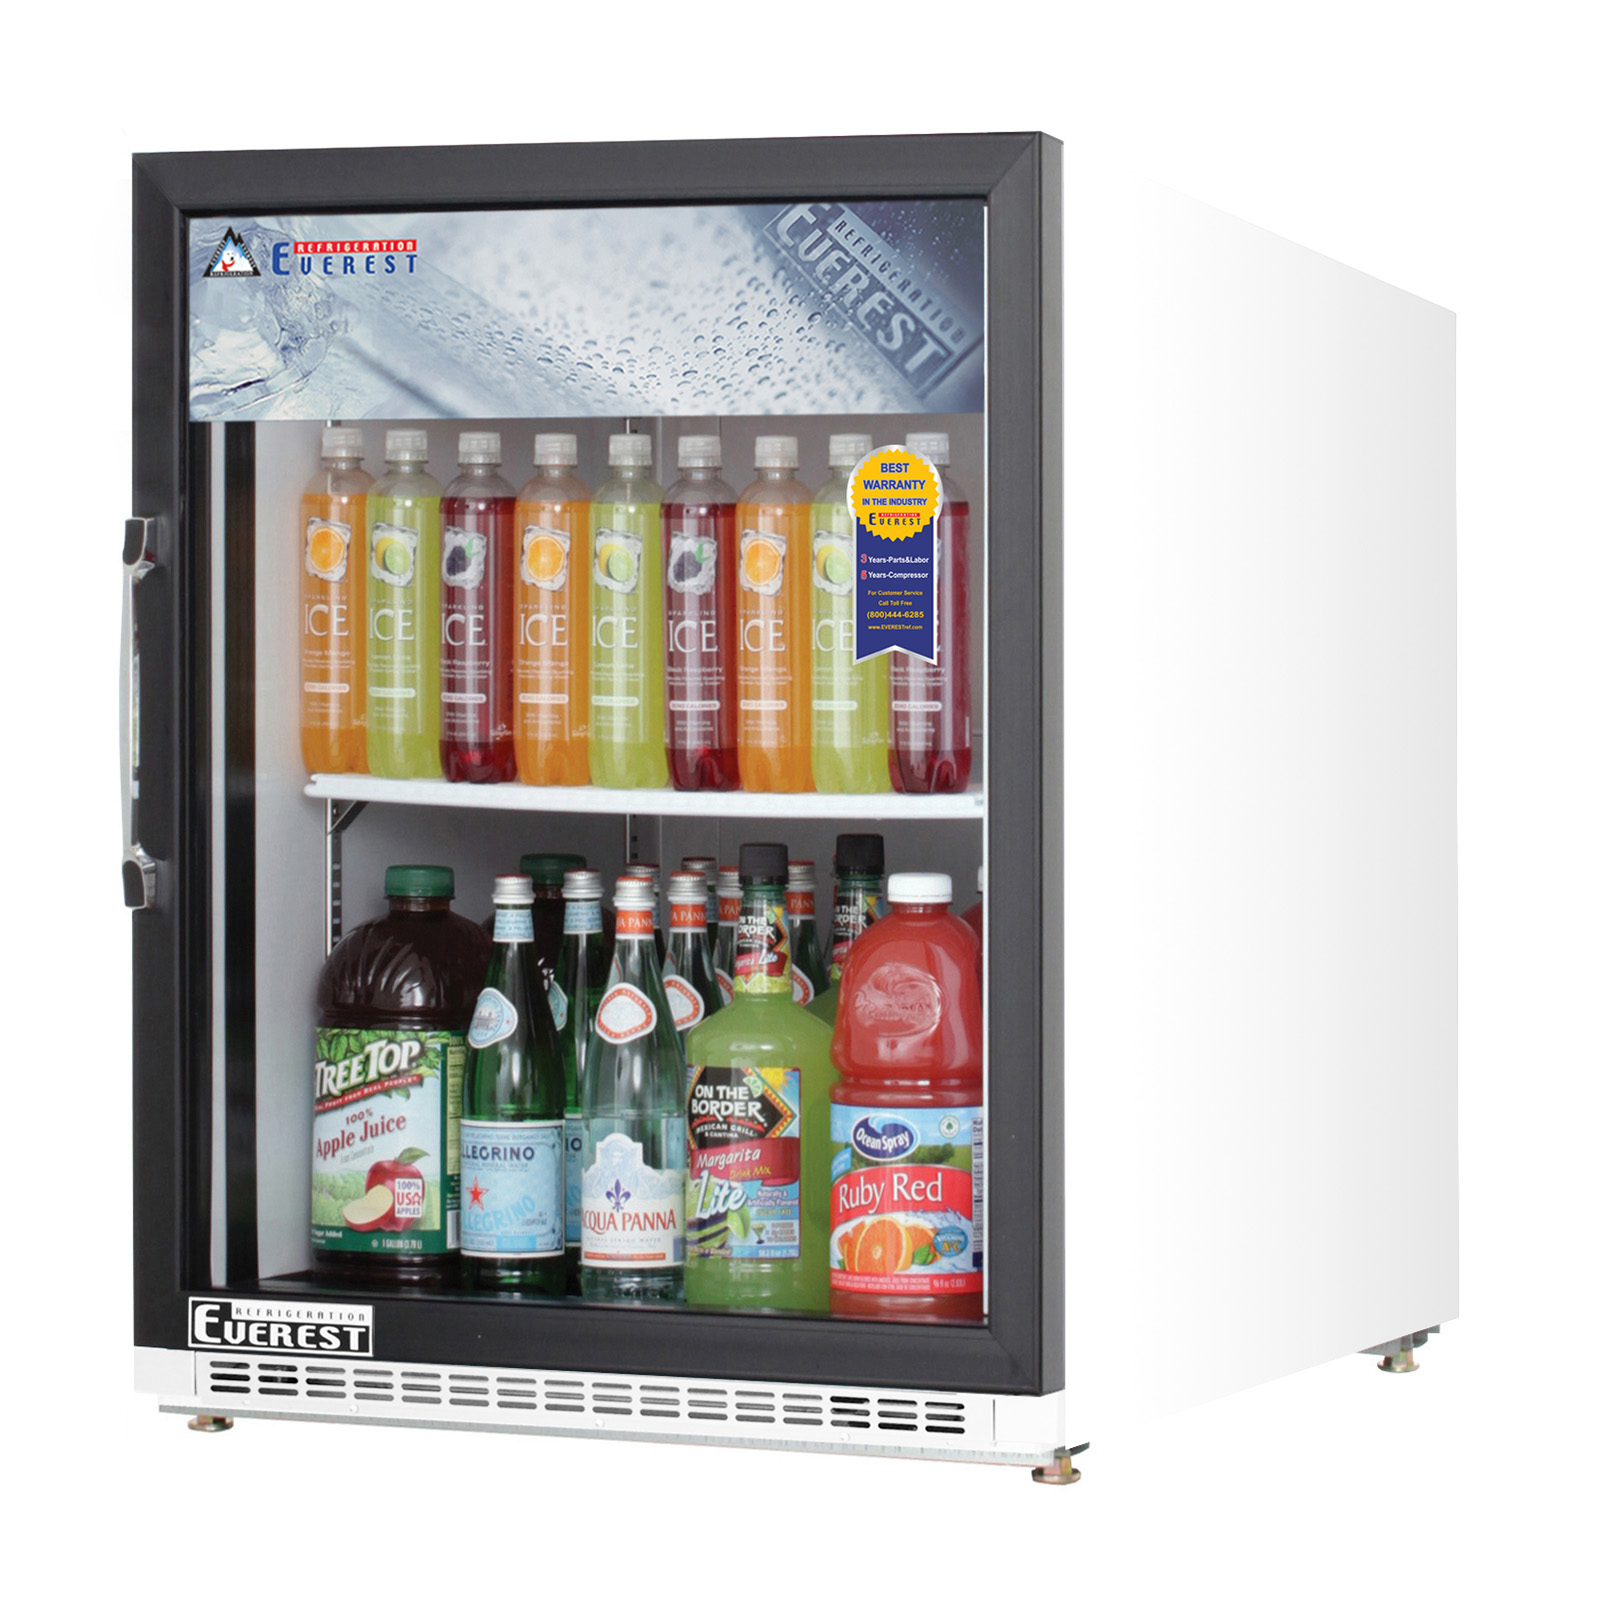 Everest Refrigeration EMGR5 refrigerator, merchandiser, countertop